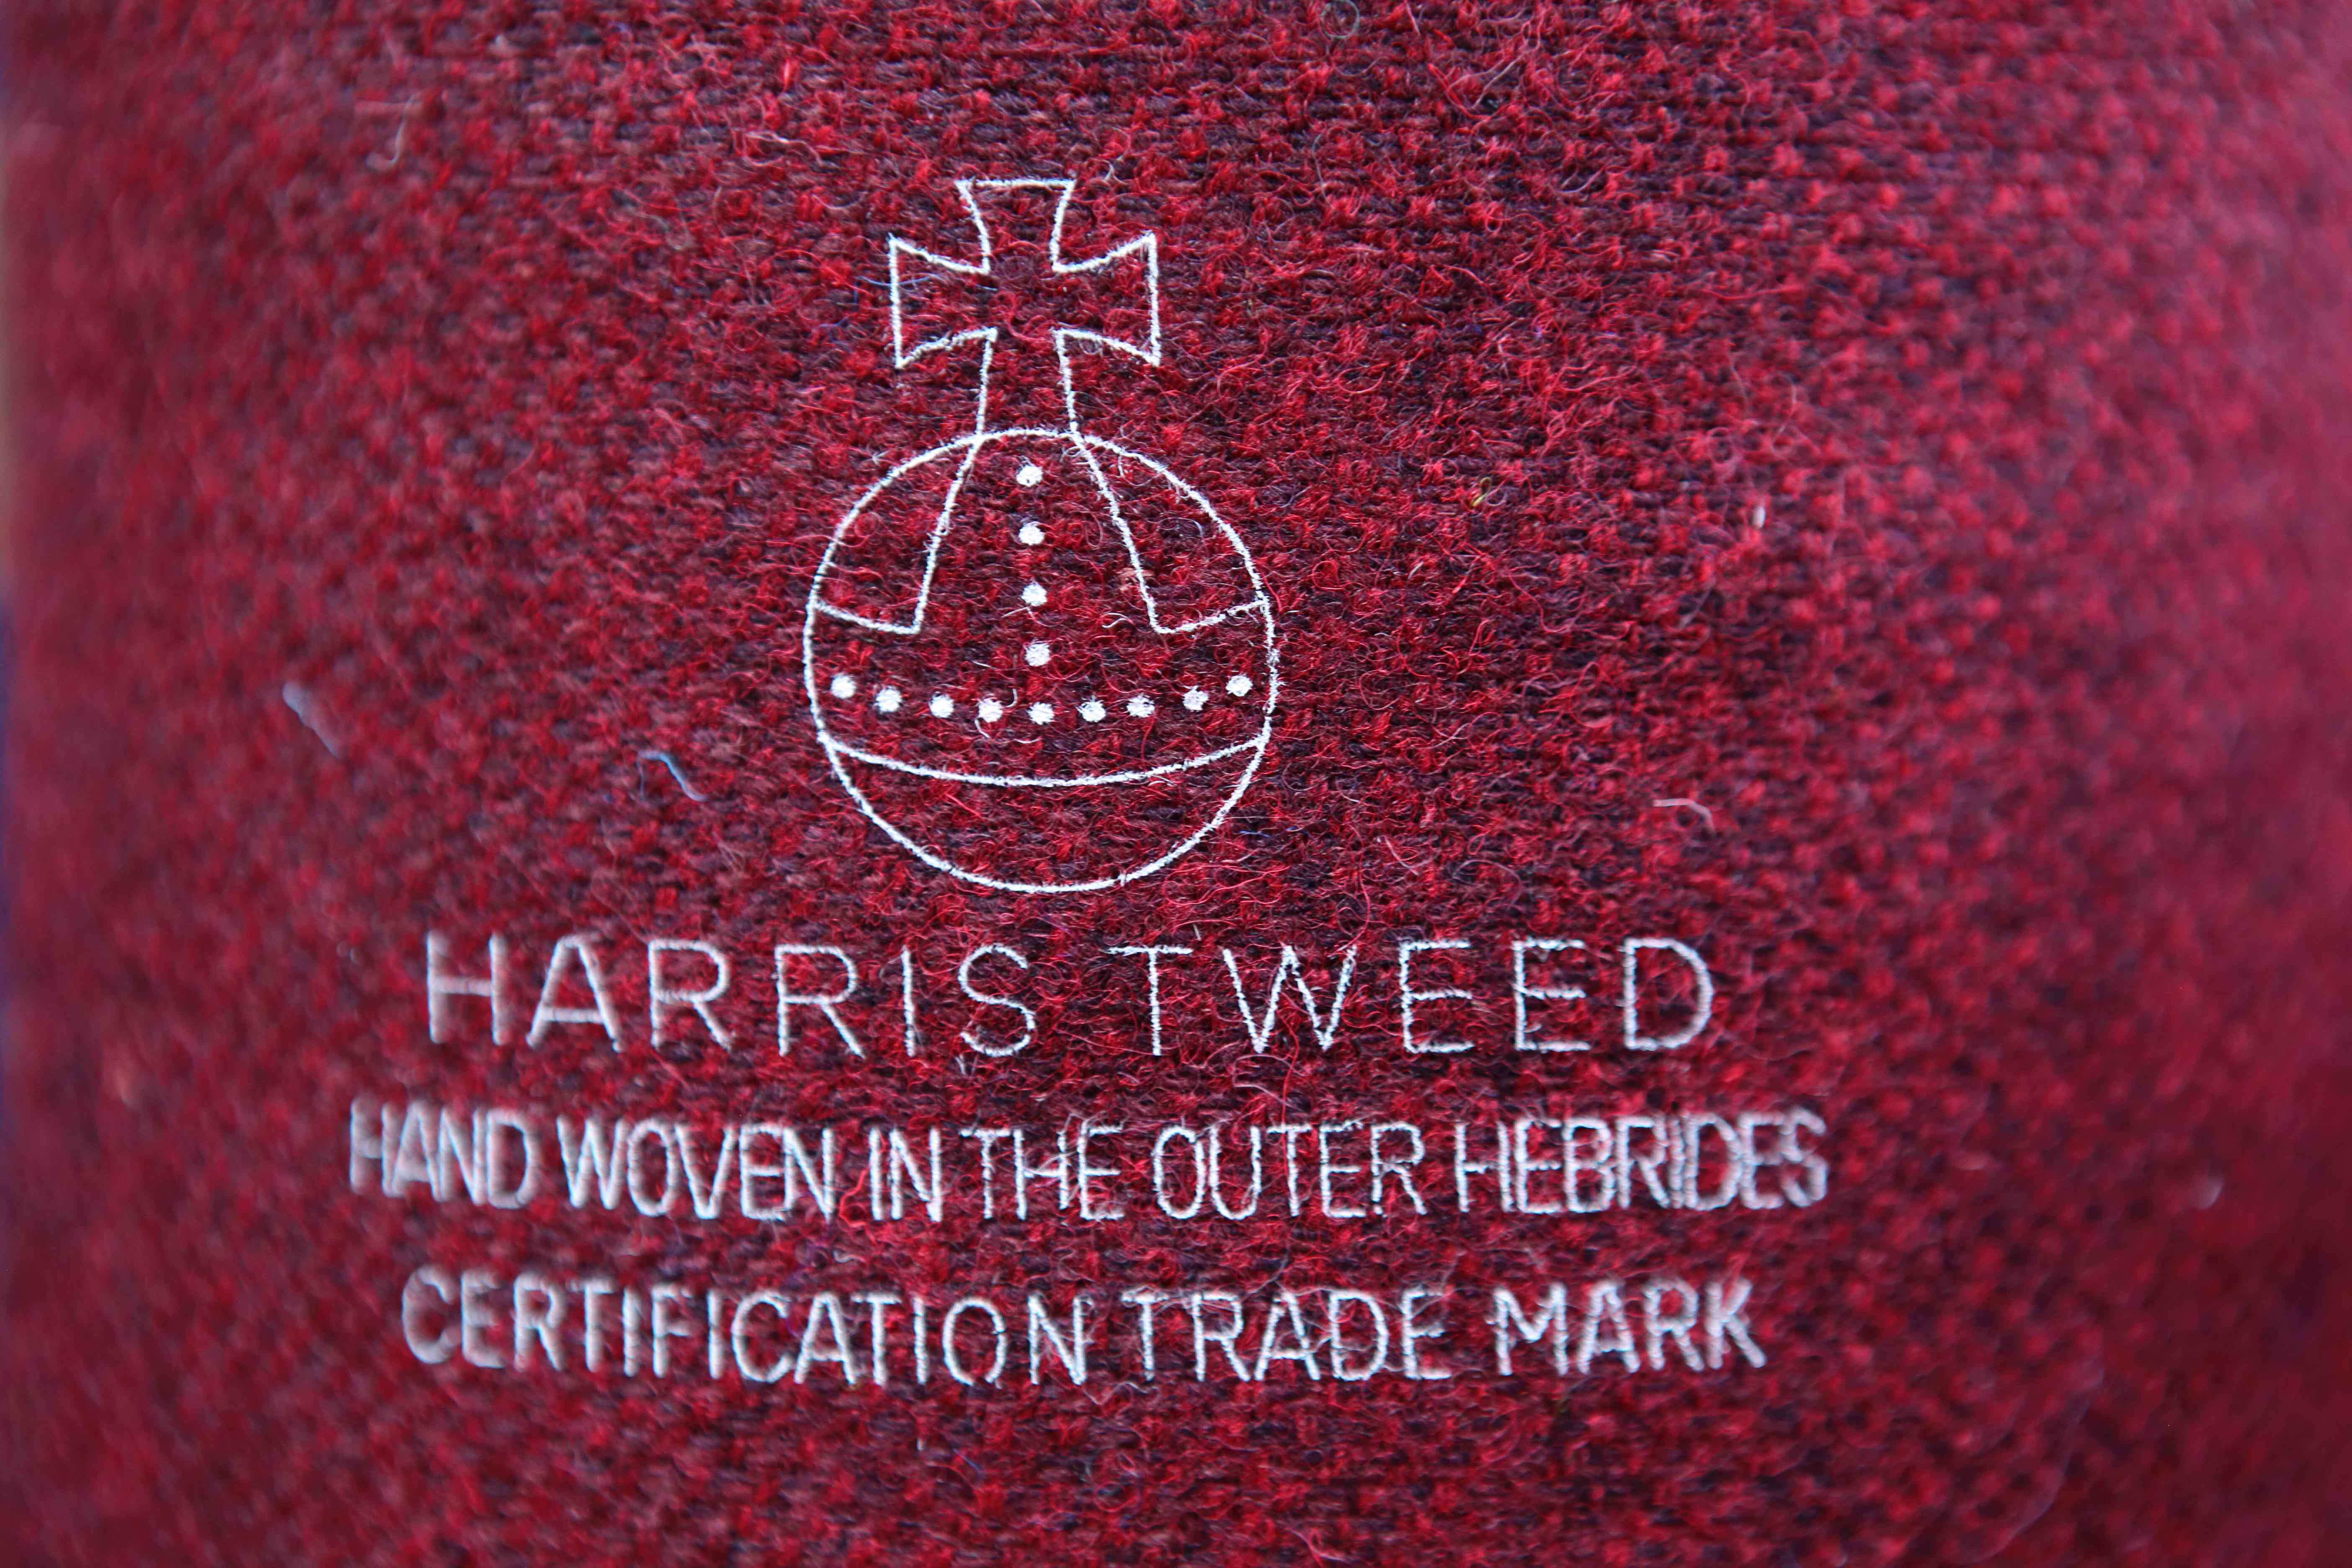 The Astonishing Story of Harris Tweed: A Mini-Documentary by Sartorial Talks